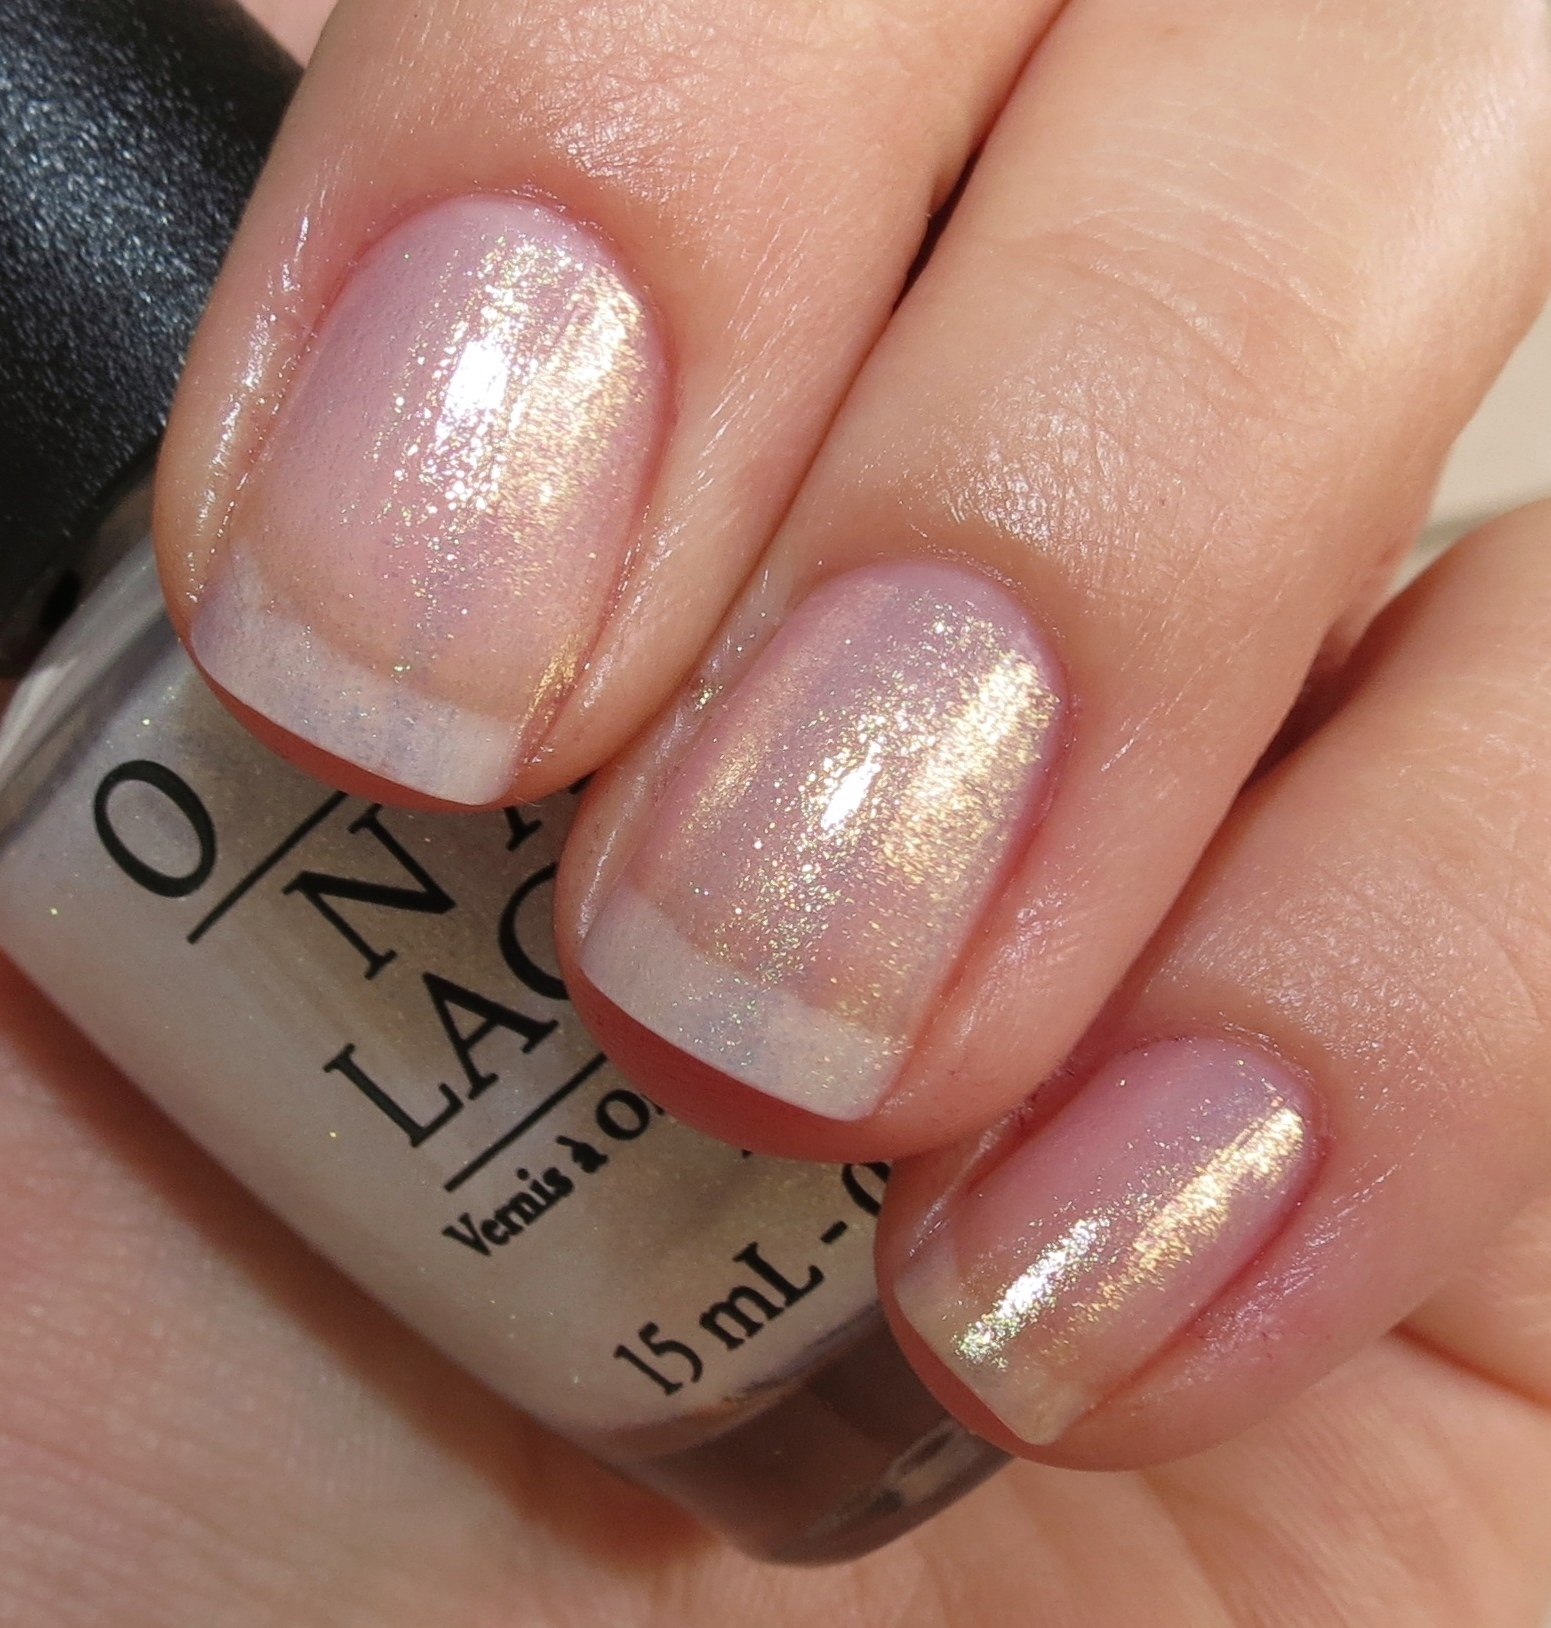 OPI Mariah Carey 2013 Holiday Nail Polish Swatches & Review ...